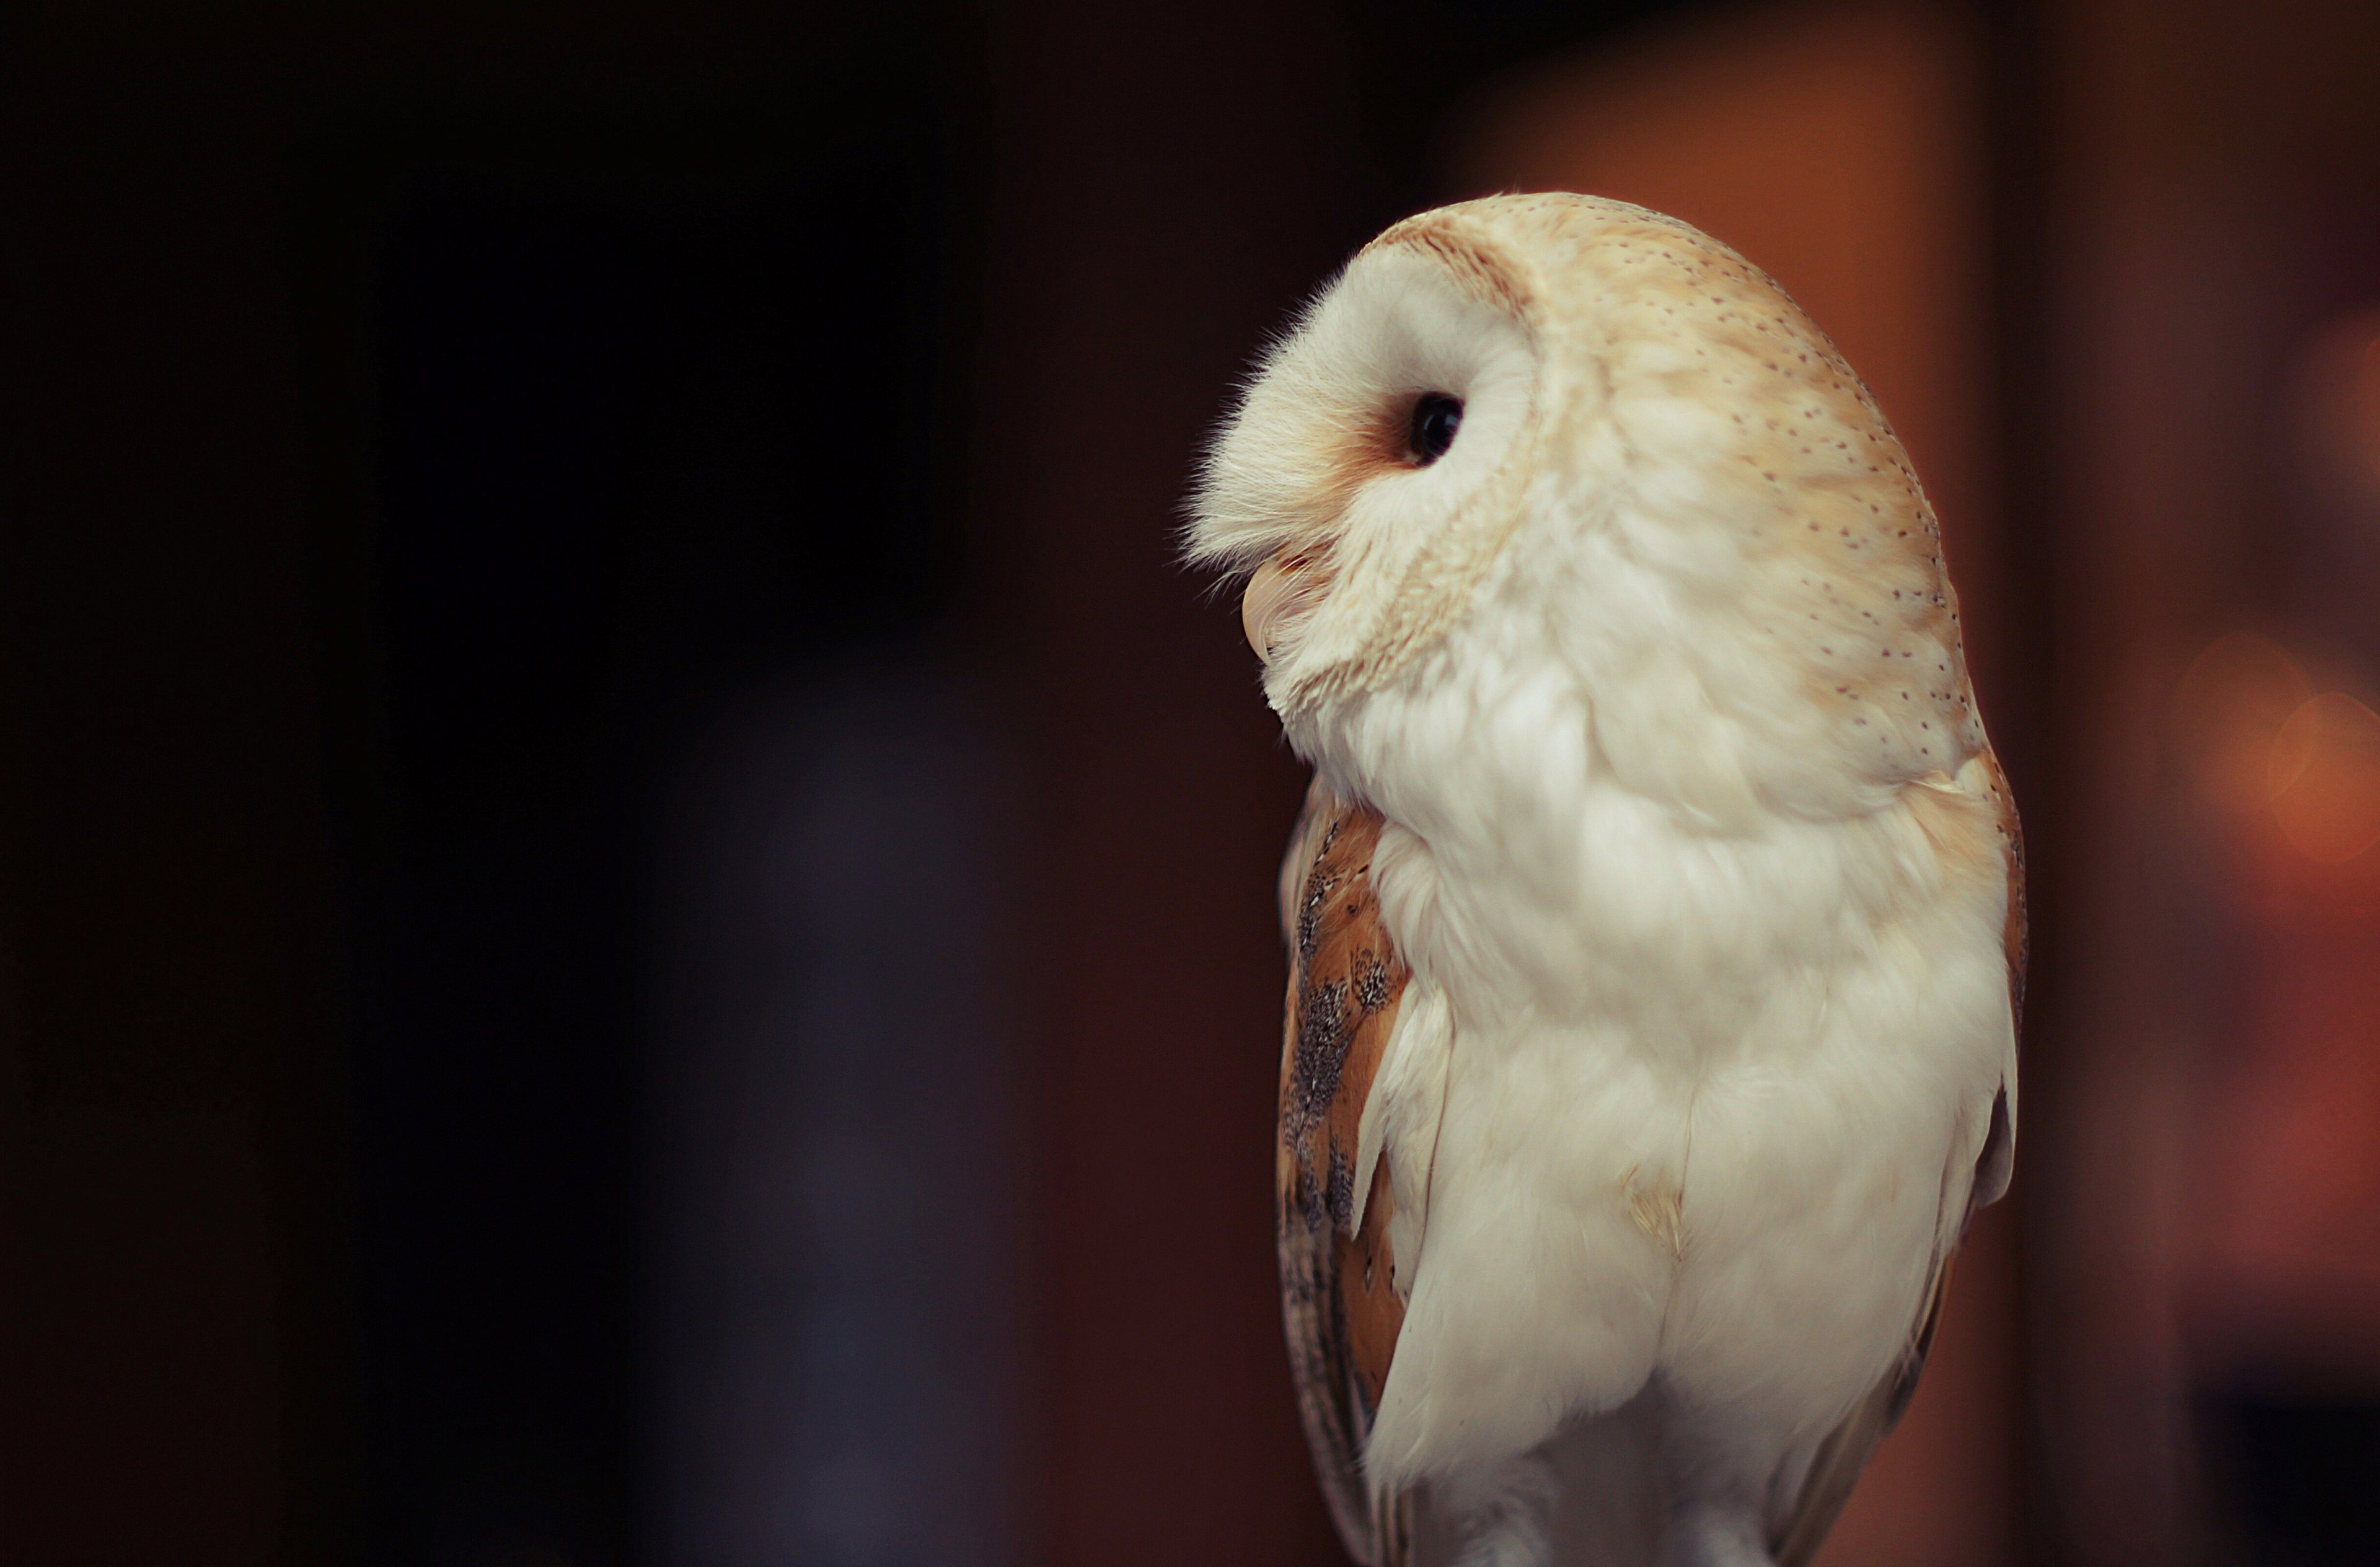 3840x2529 owl 4k download hd wallpaper for pc Owl